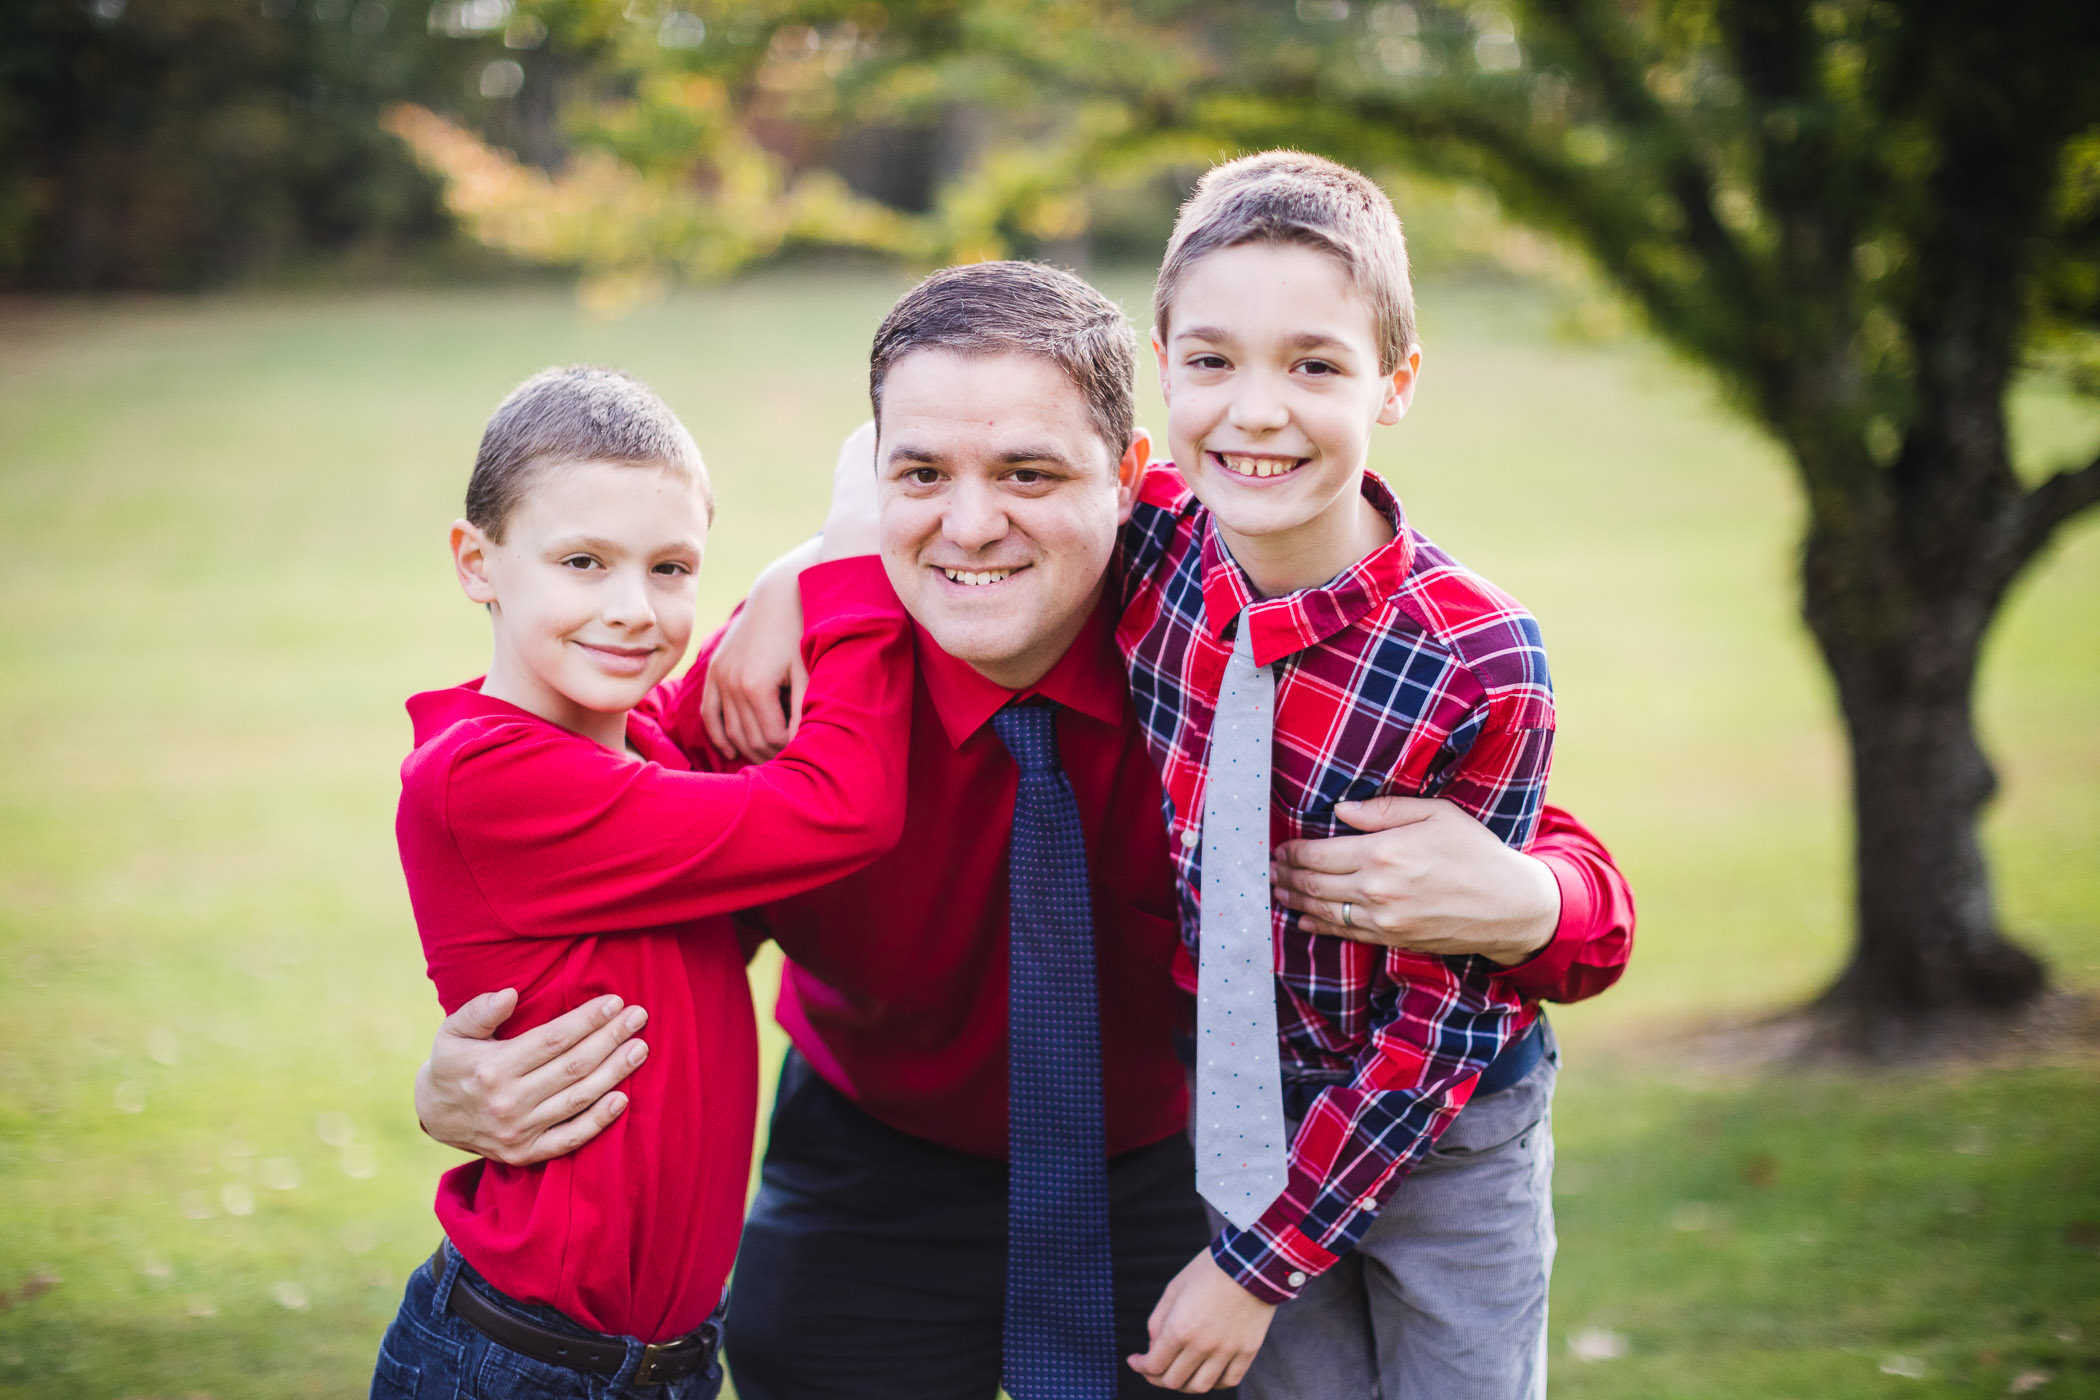 A Colorful October Family Portrait Session from Felipe | Petruzzo ...